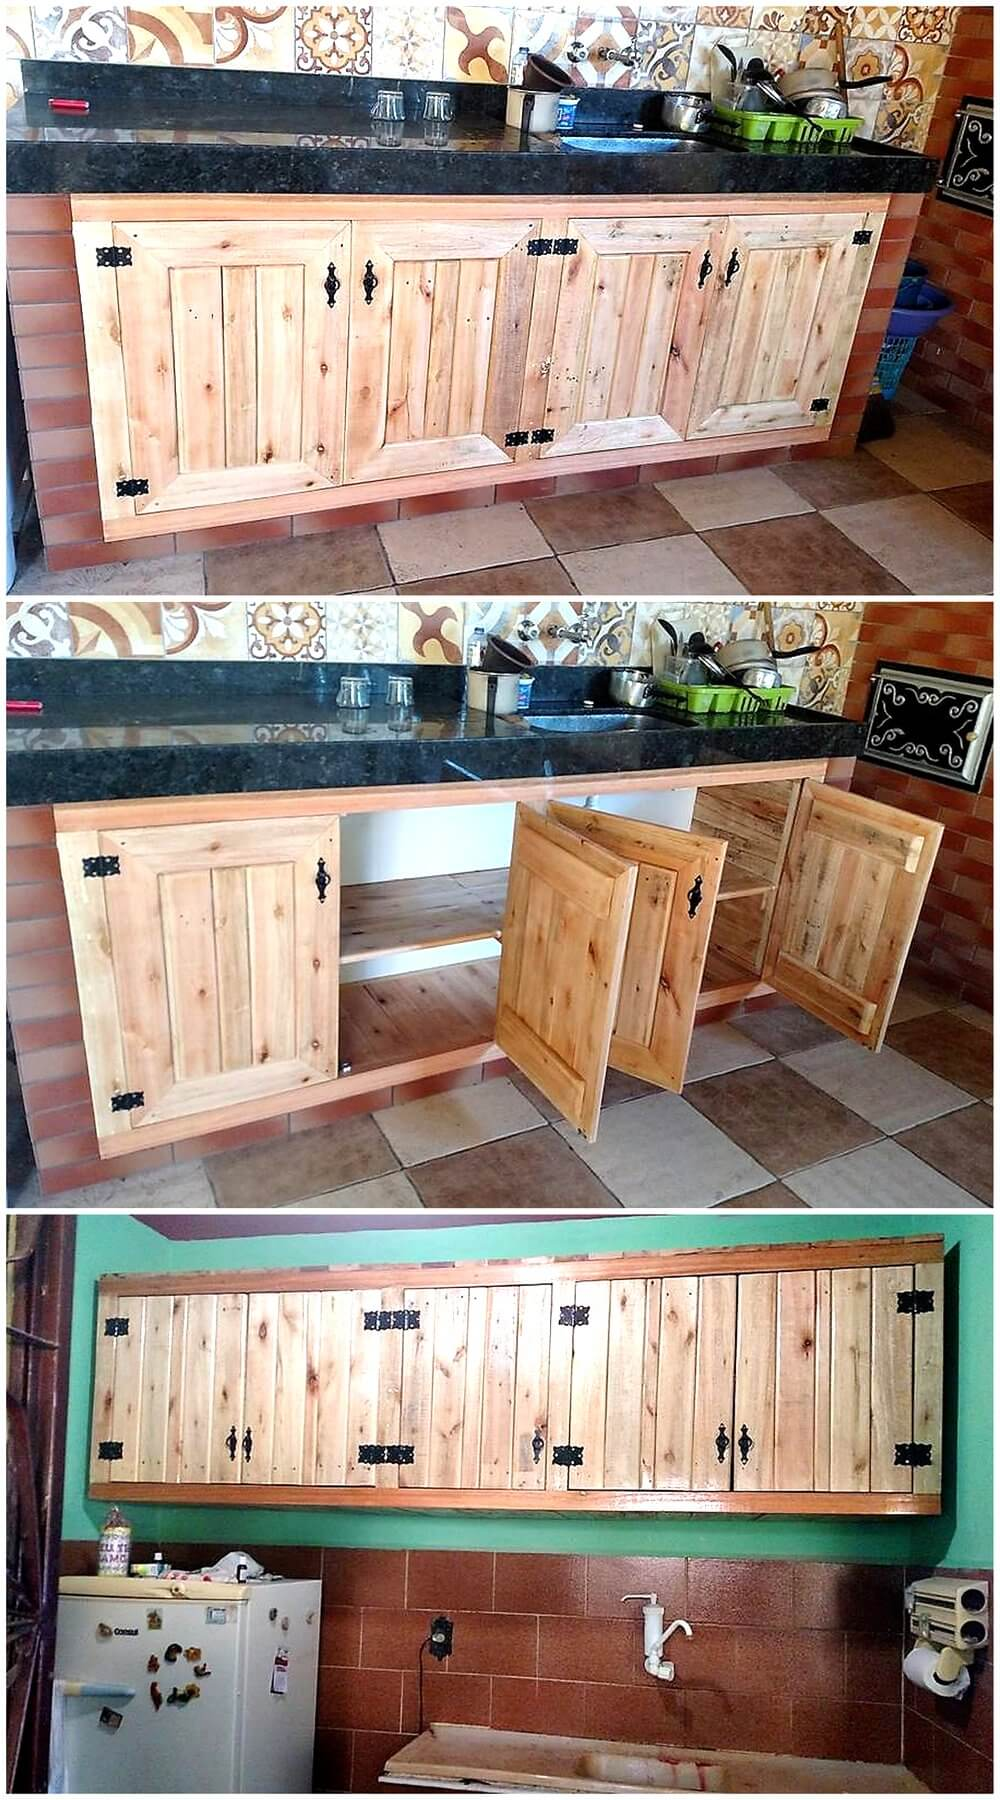 Wooden pallets kitchen storage cabinets pallet ideas for Pallet kitchen ideas